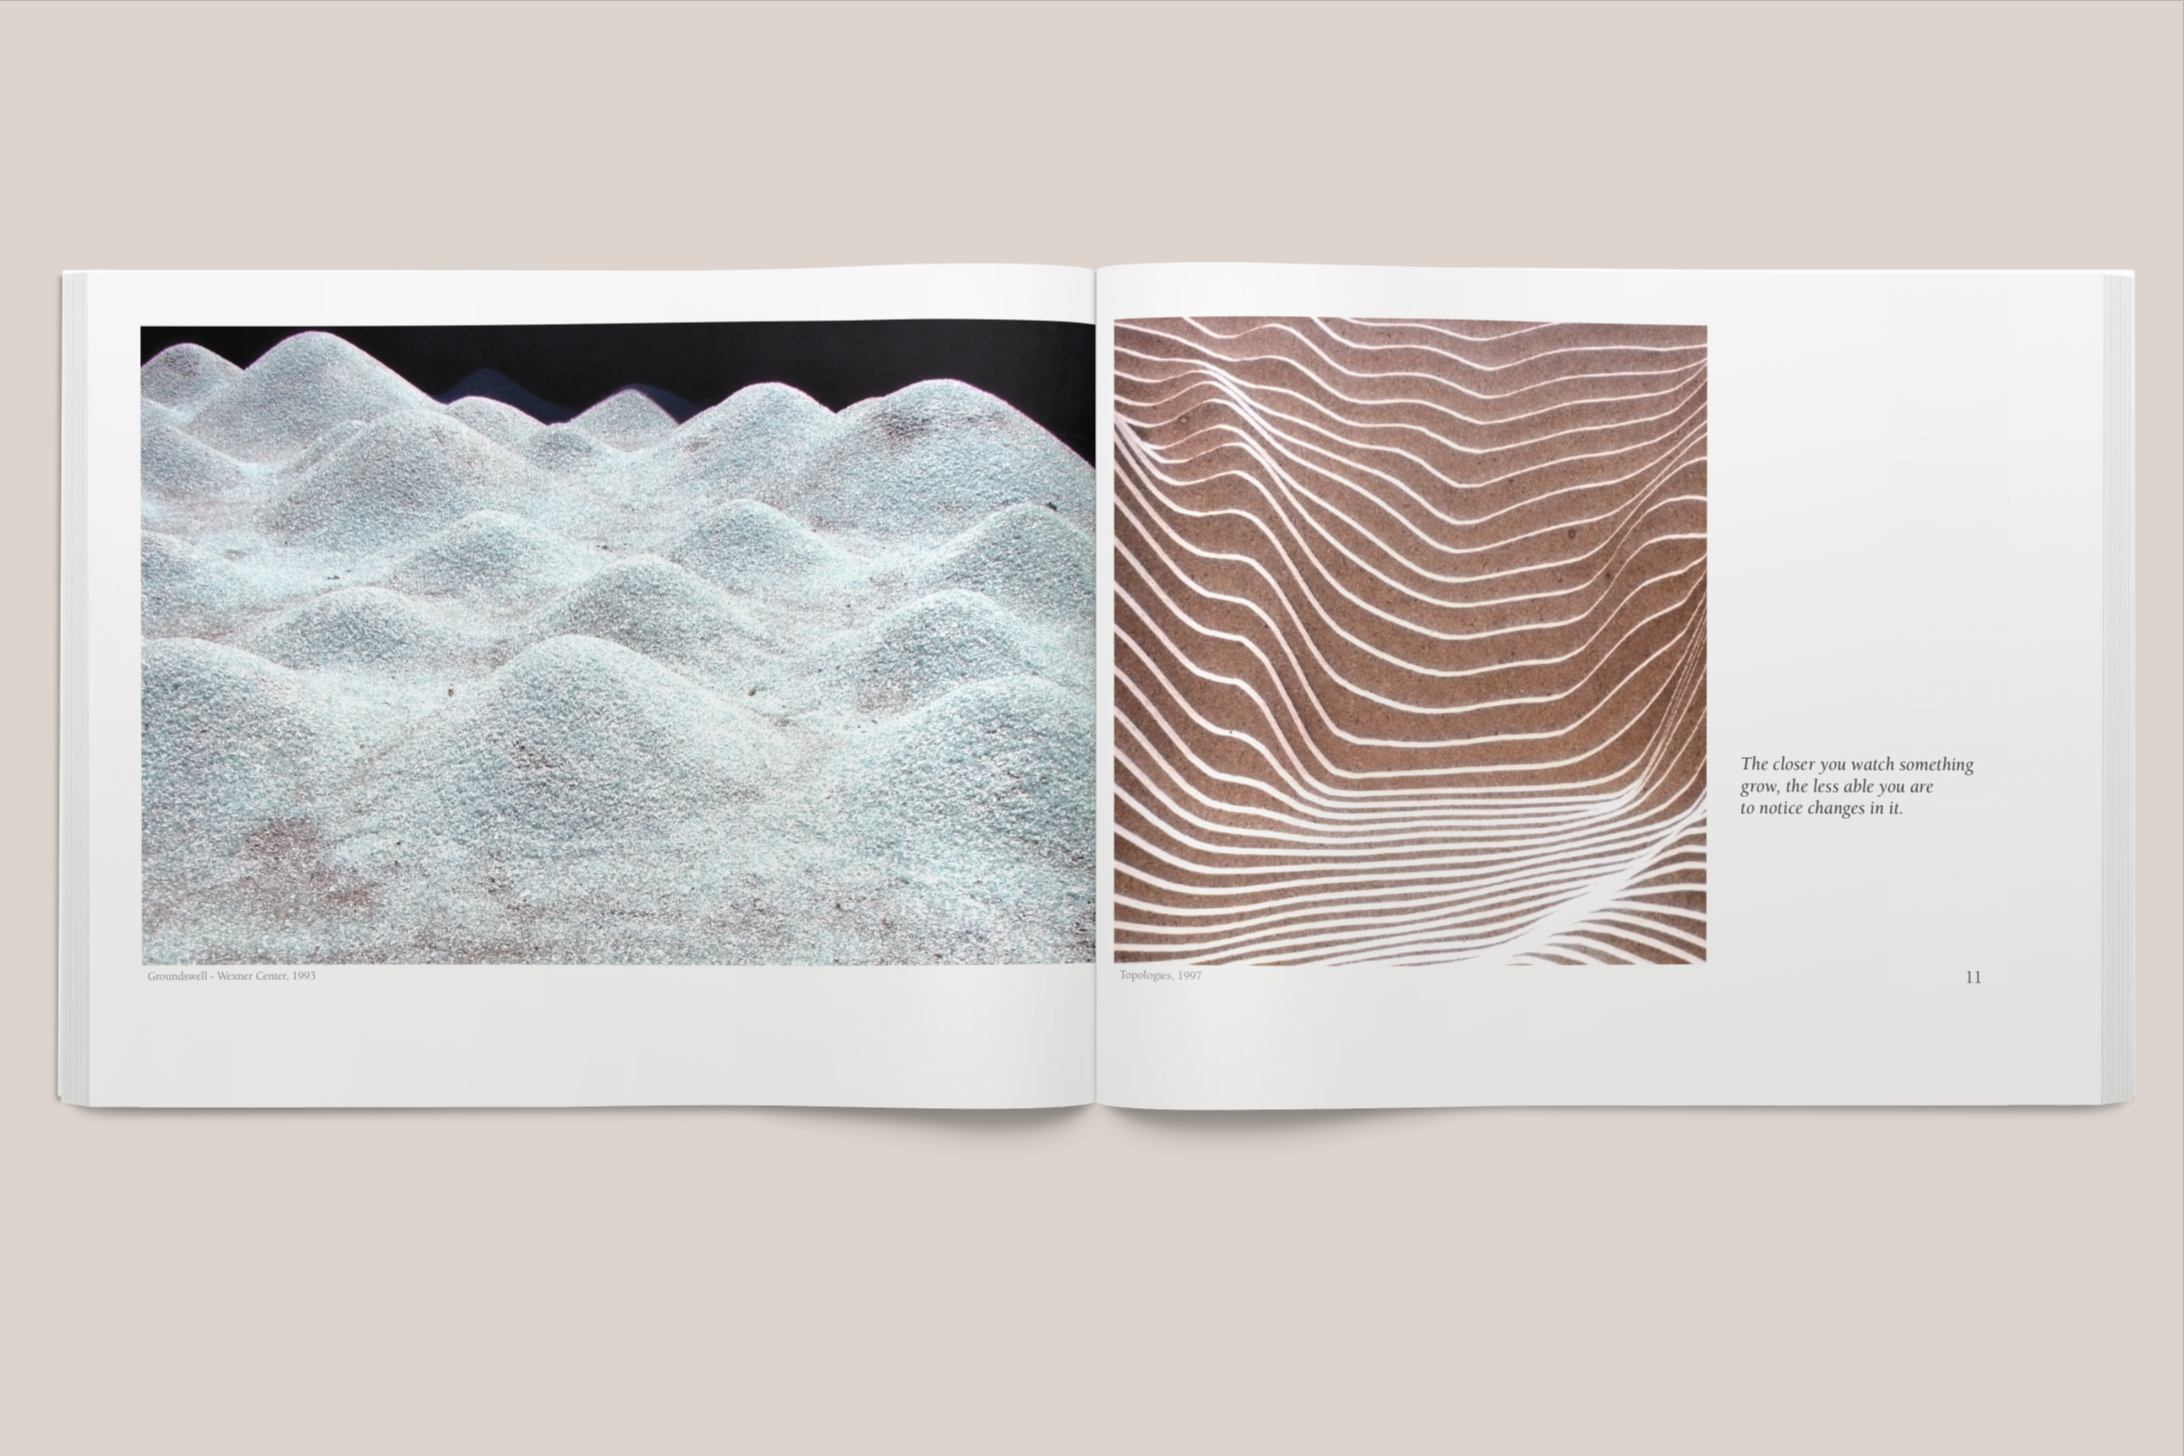 The  landscape  orientation of the book emphasizes its rhythm